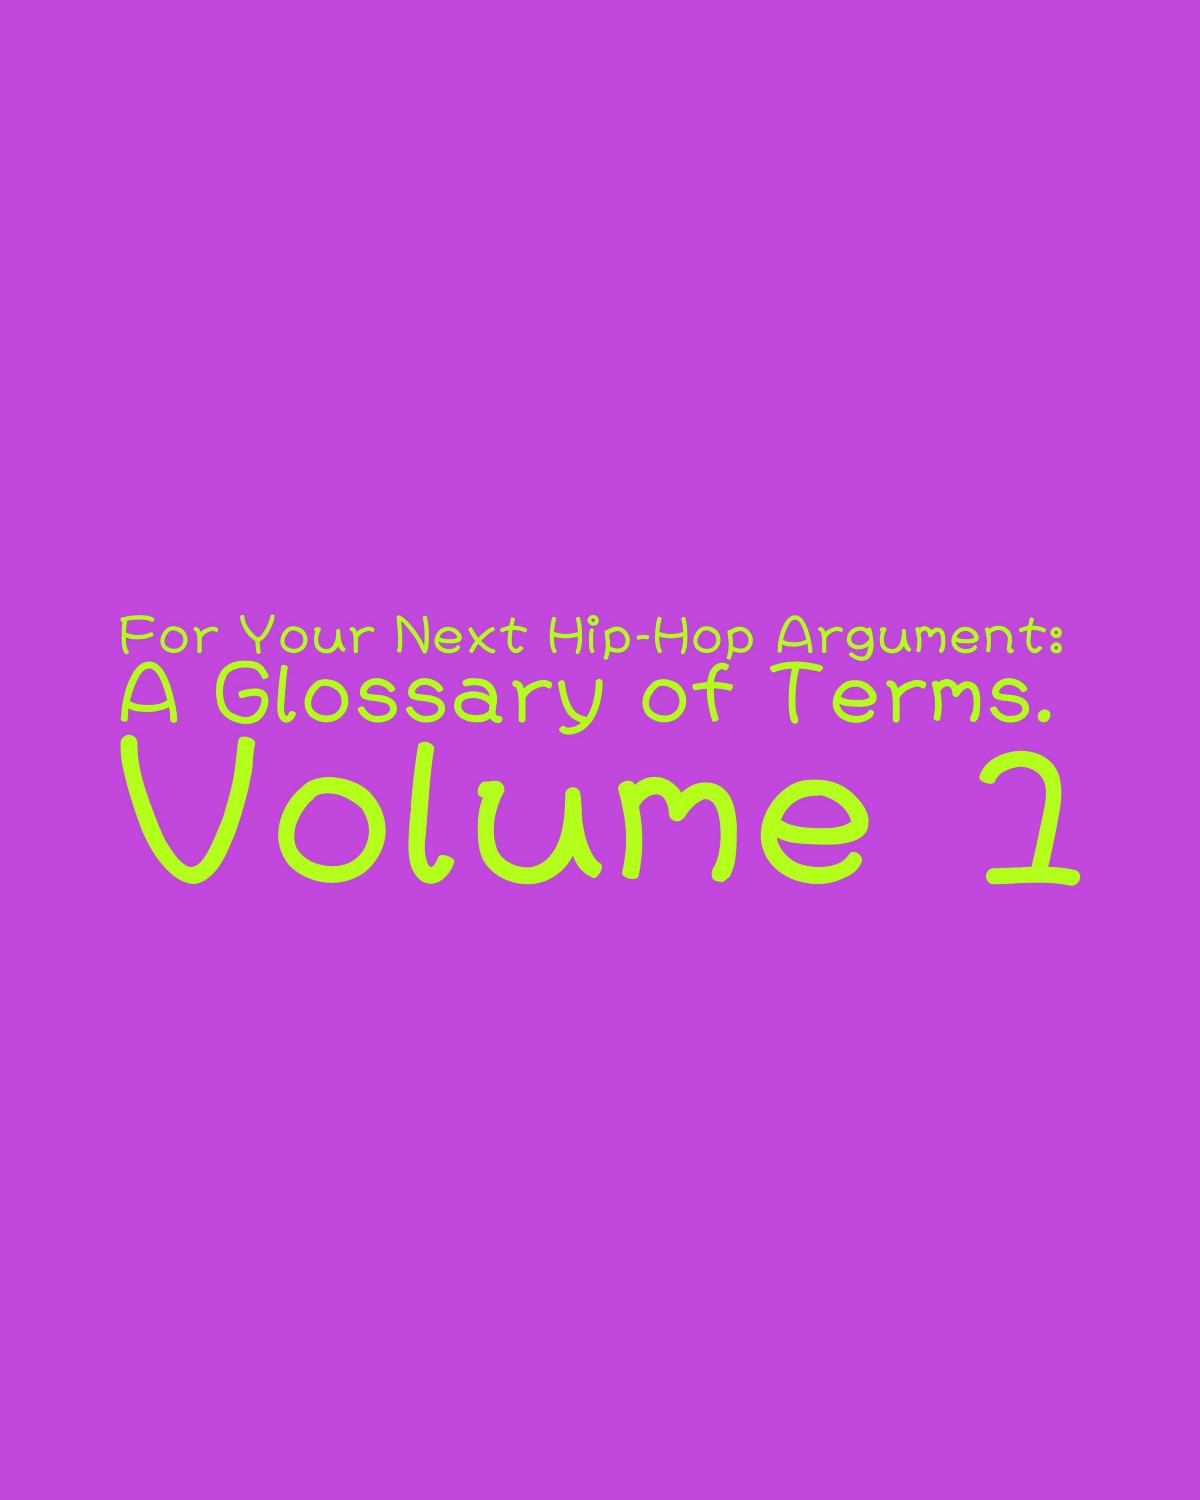 For Your Next Hip-Hop Discussion: A Glossary of Terms  Volume 1